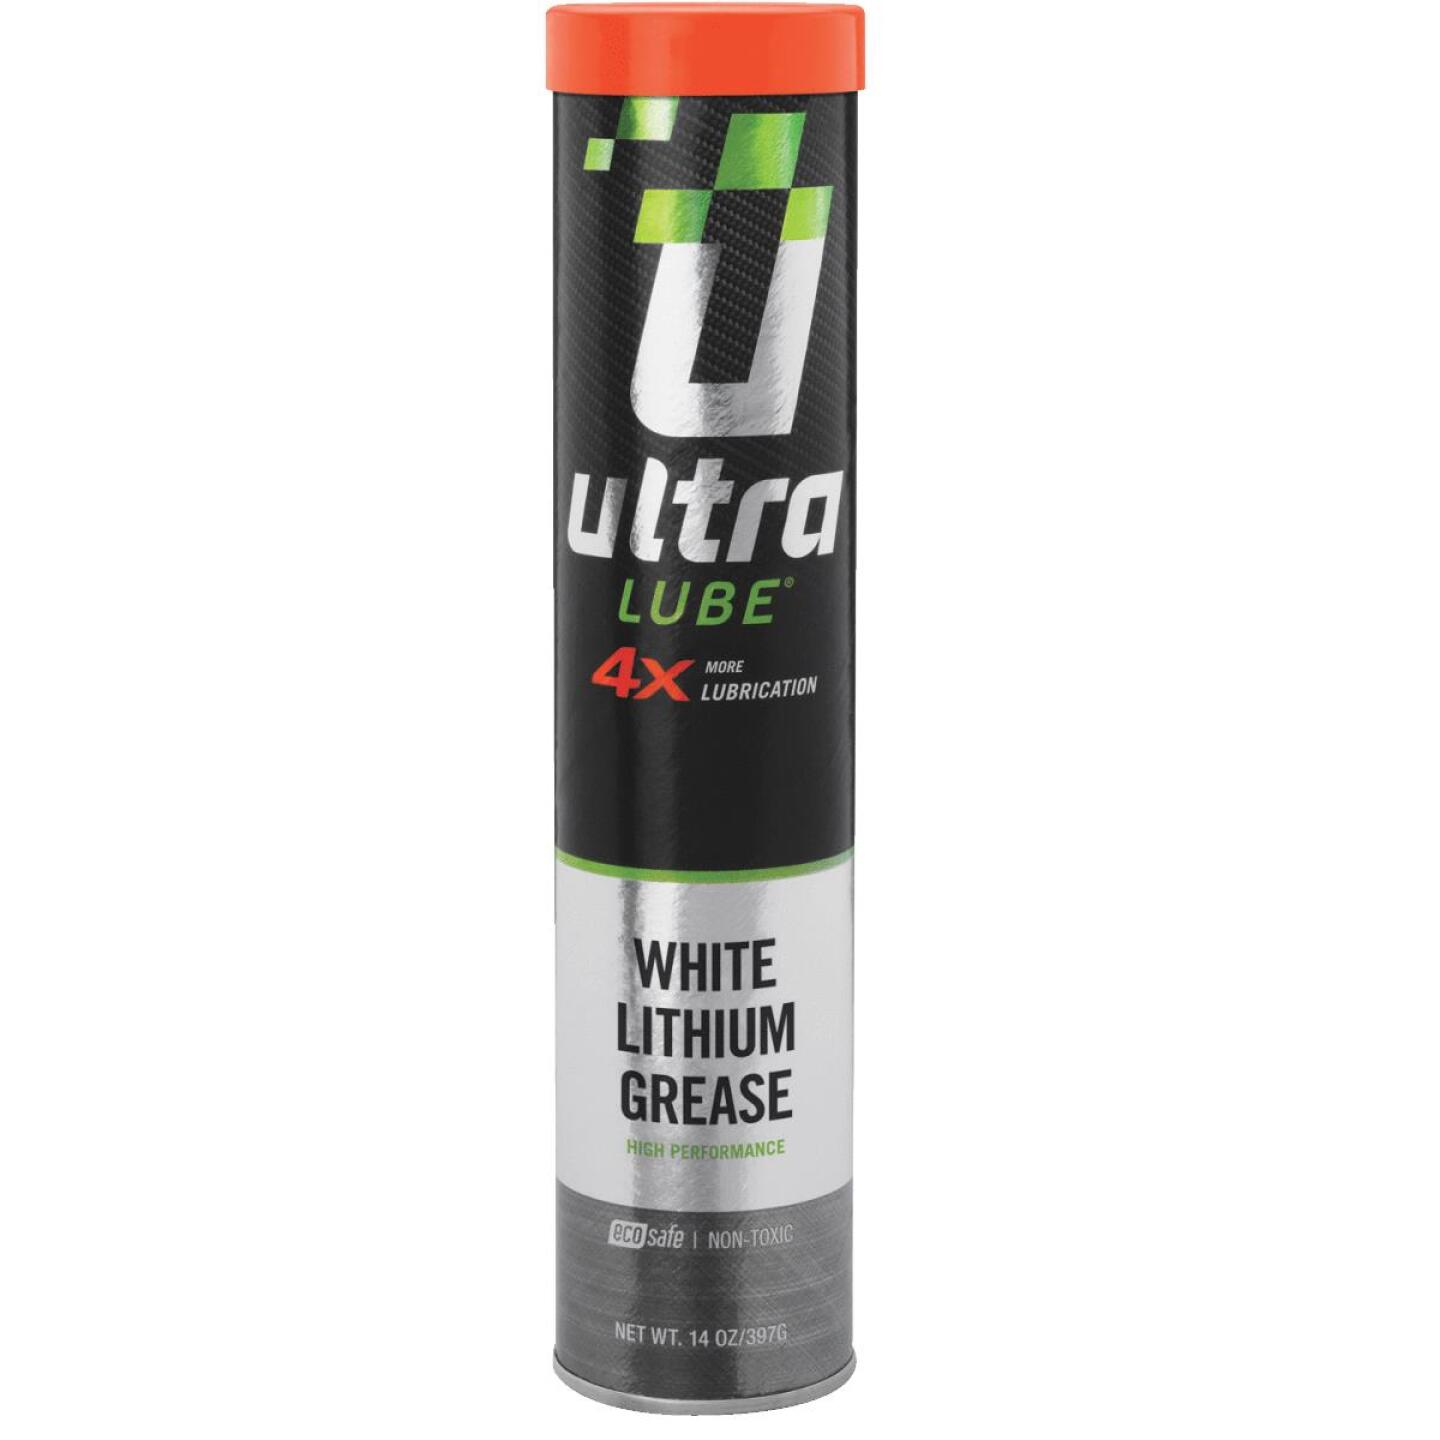 UltraLube 14 Oz. Cartridge White Lithium Grease Image 1